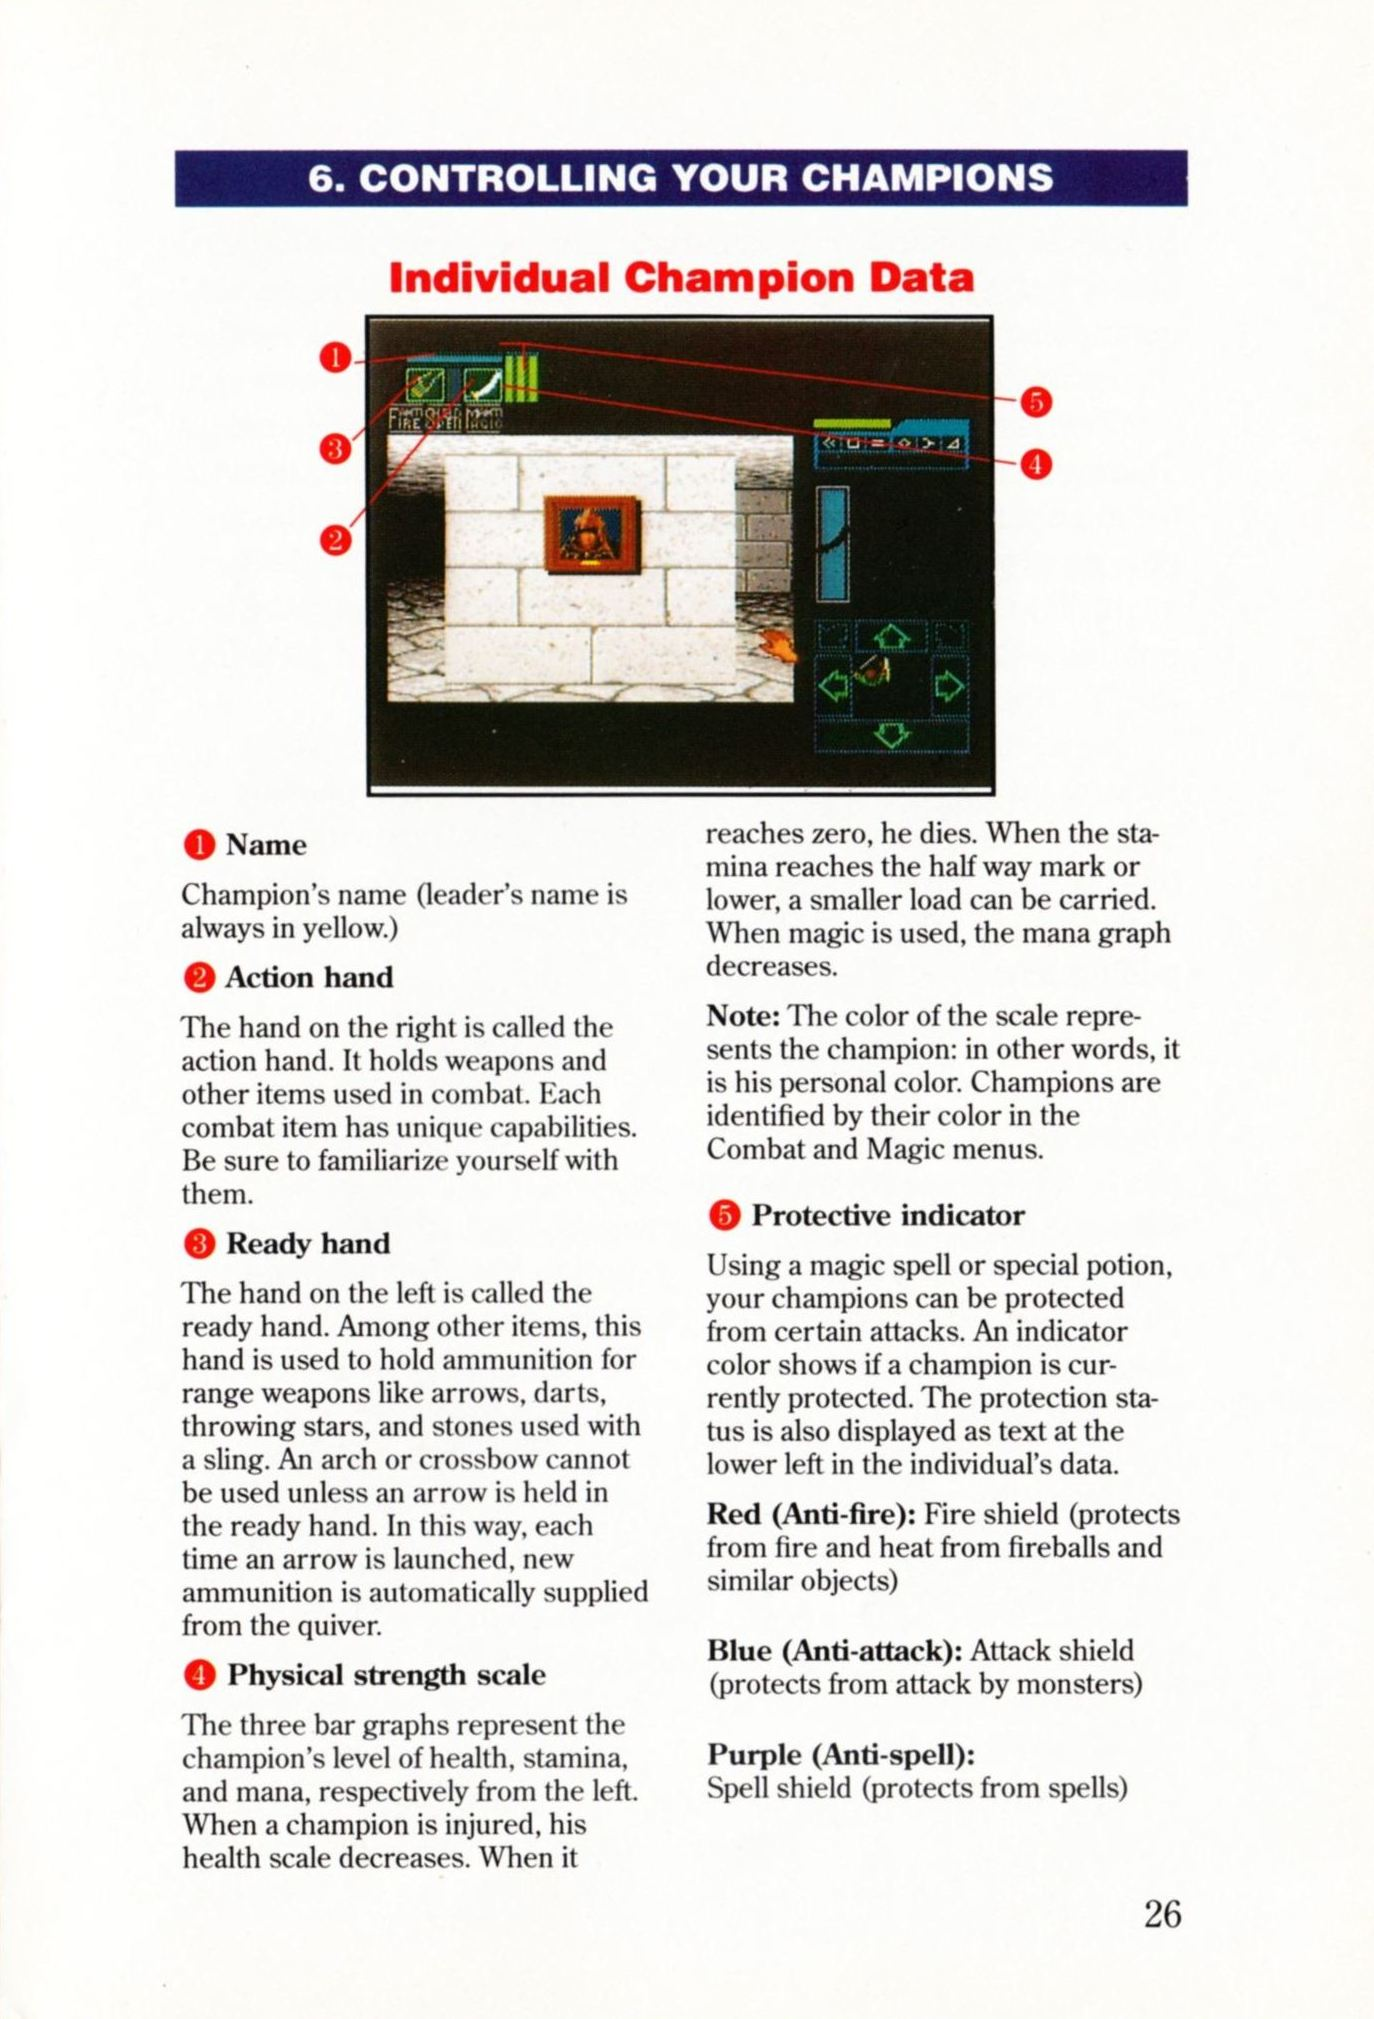 Game - Dungeon Master - US - Super NES - Manual - Page 029 - Scan